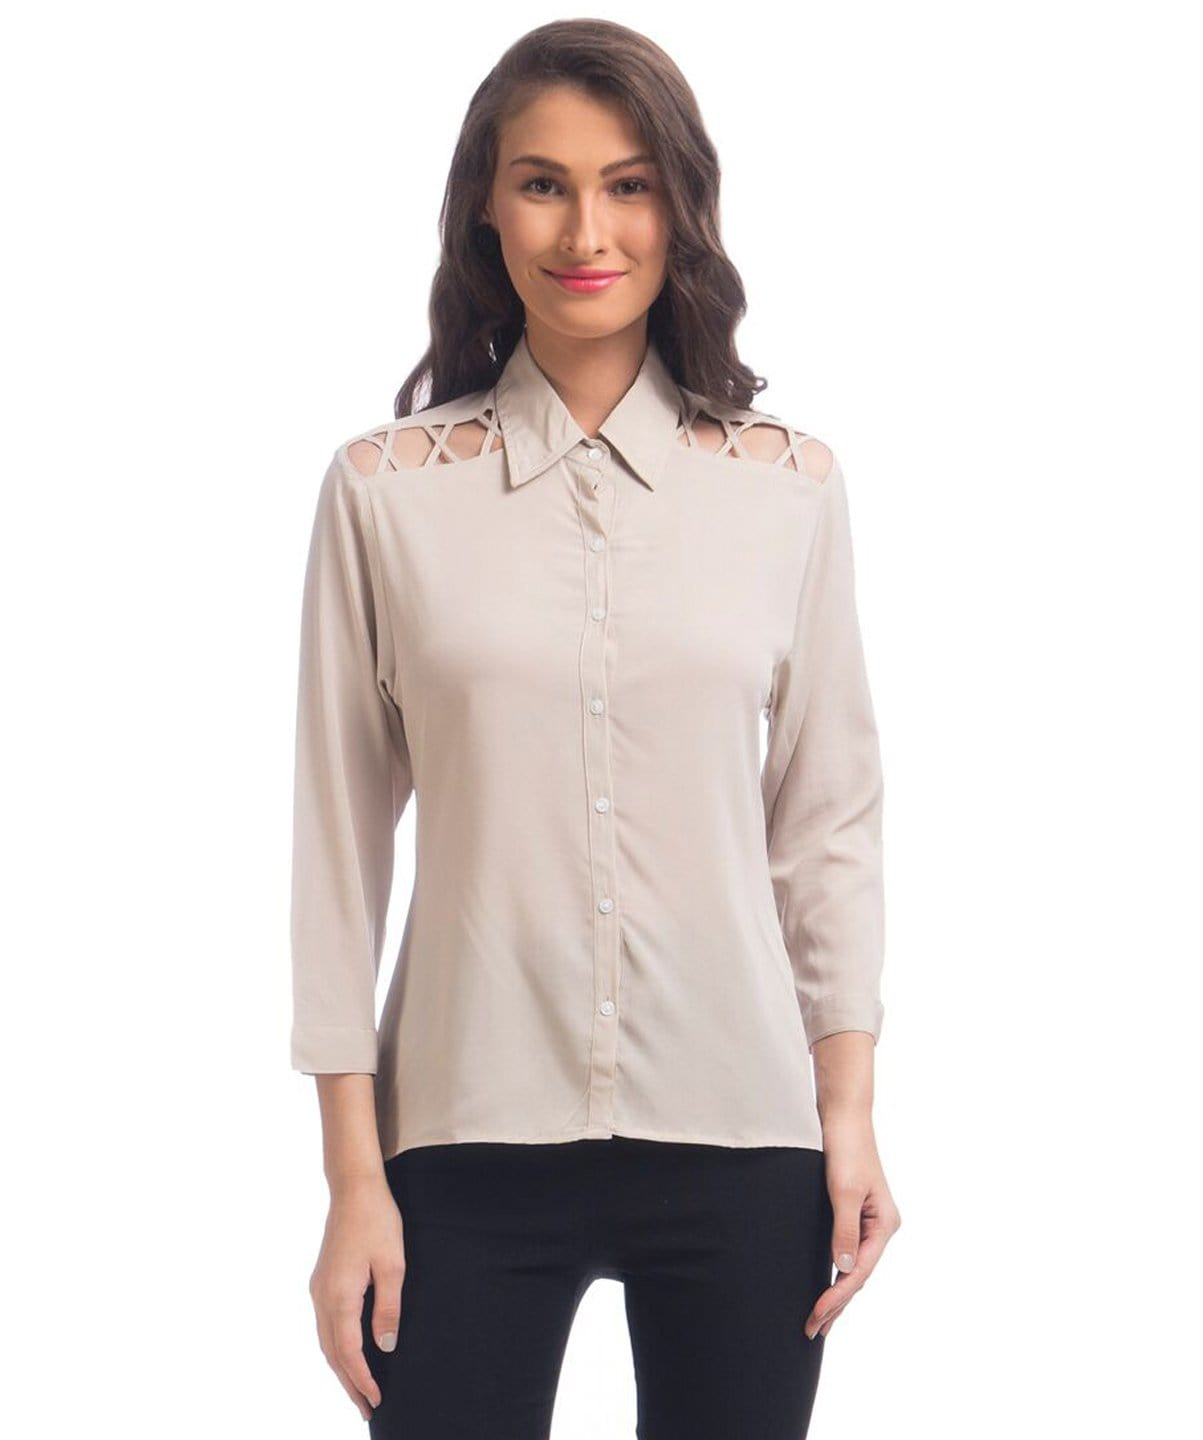 Solid Beige Button Down Crepe Shirt - Uptownie